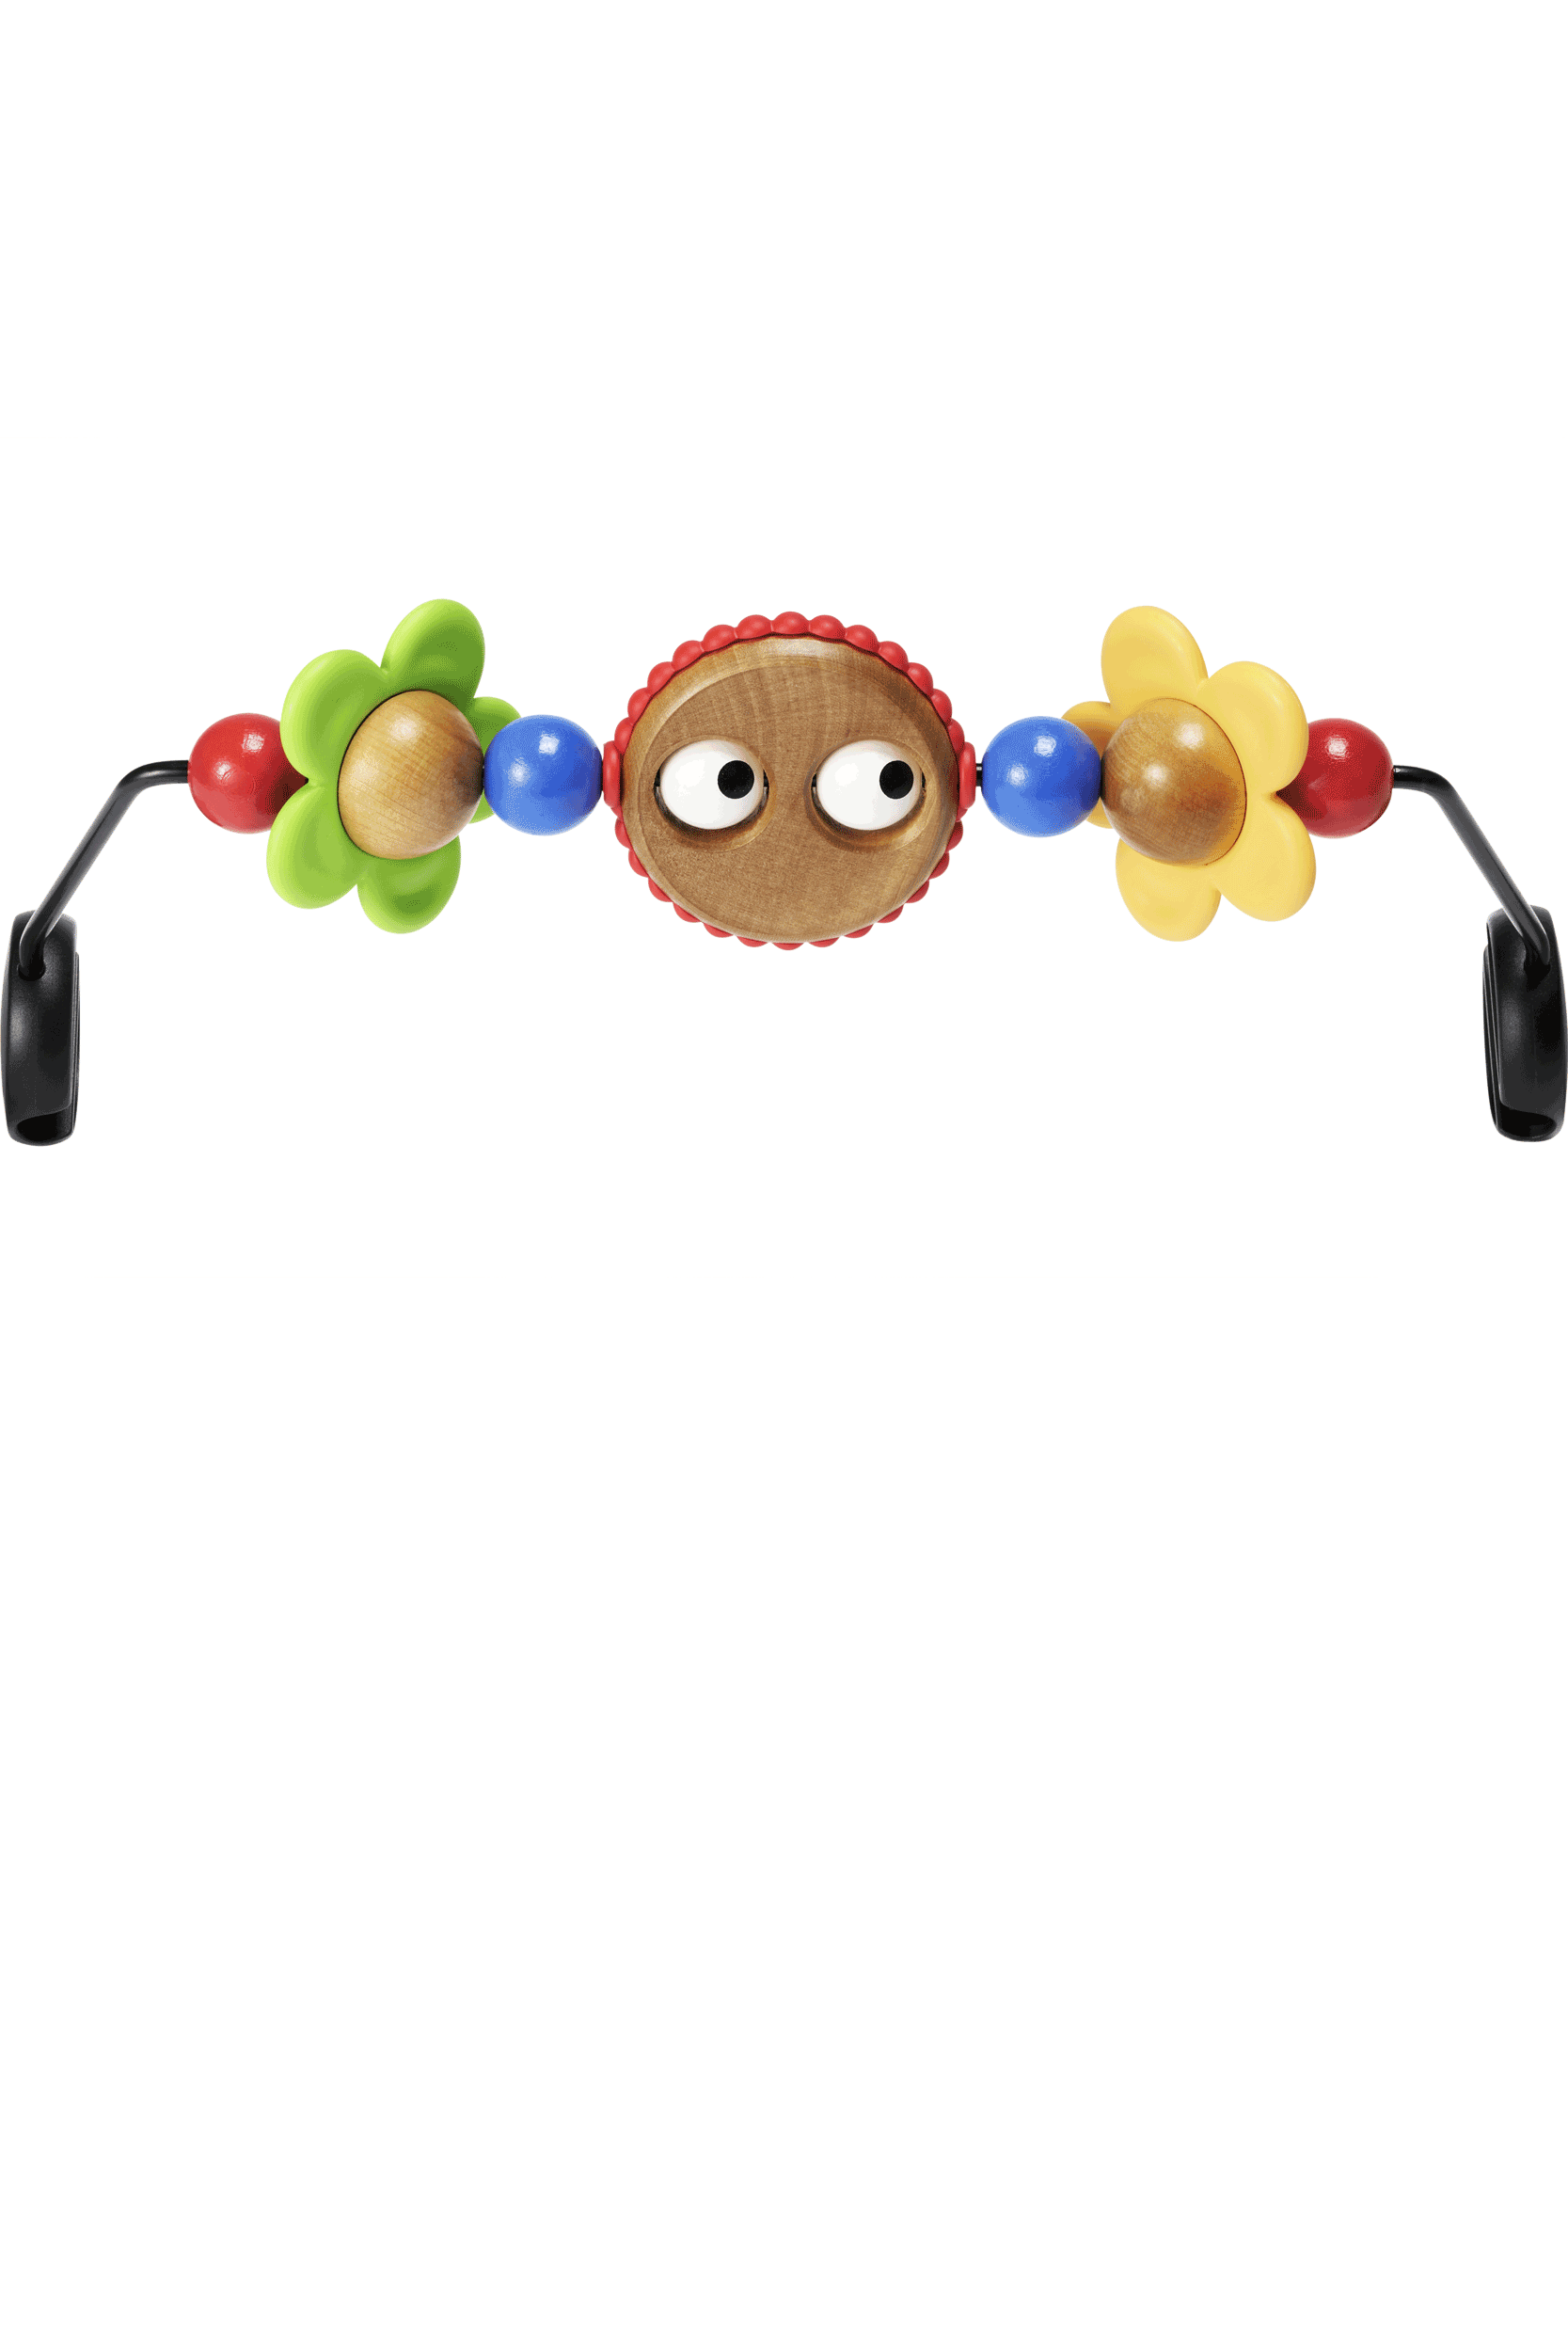 BabyBjorn Baby Bjorn Wooden Toy for Baby Bouncer Free Shipping! Googly Eyes